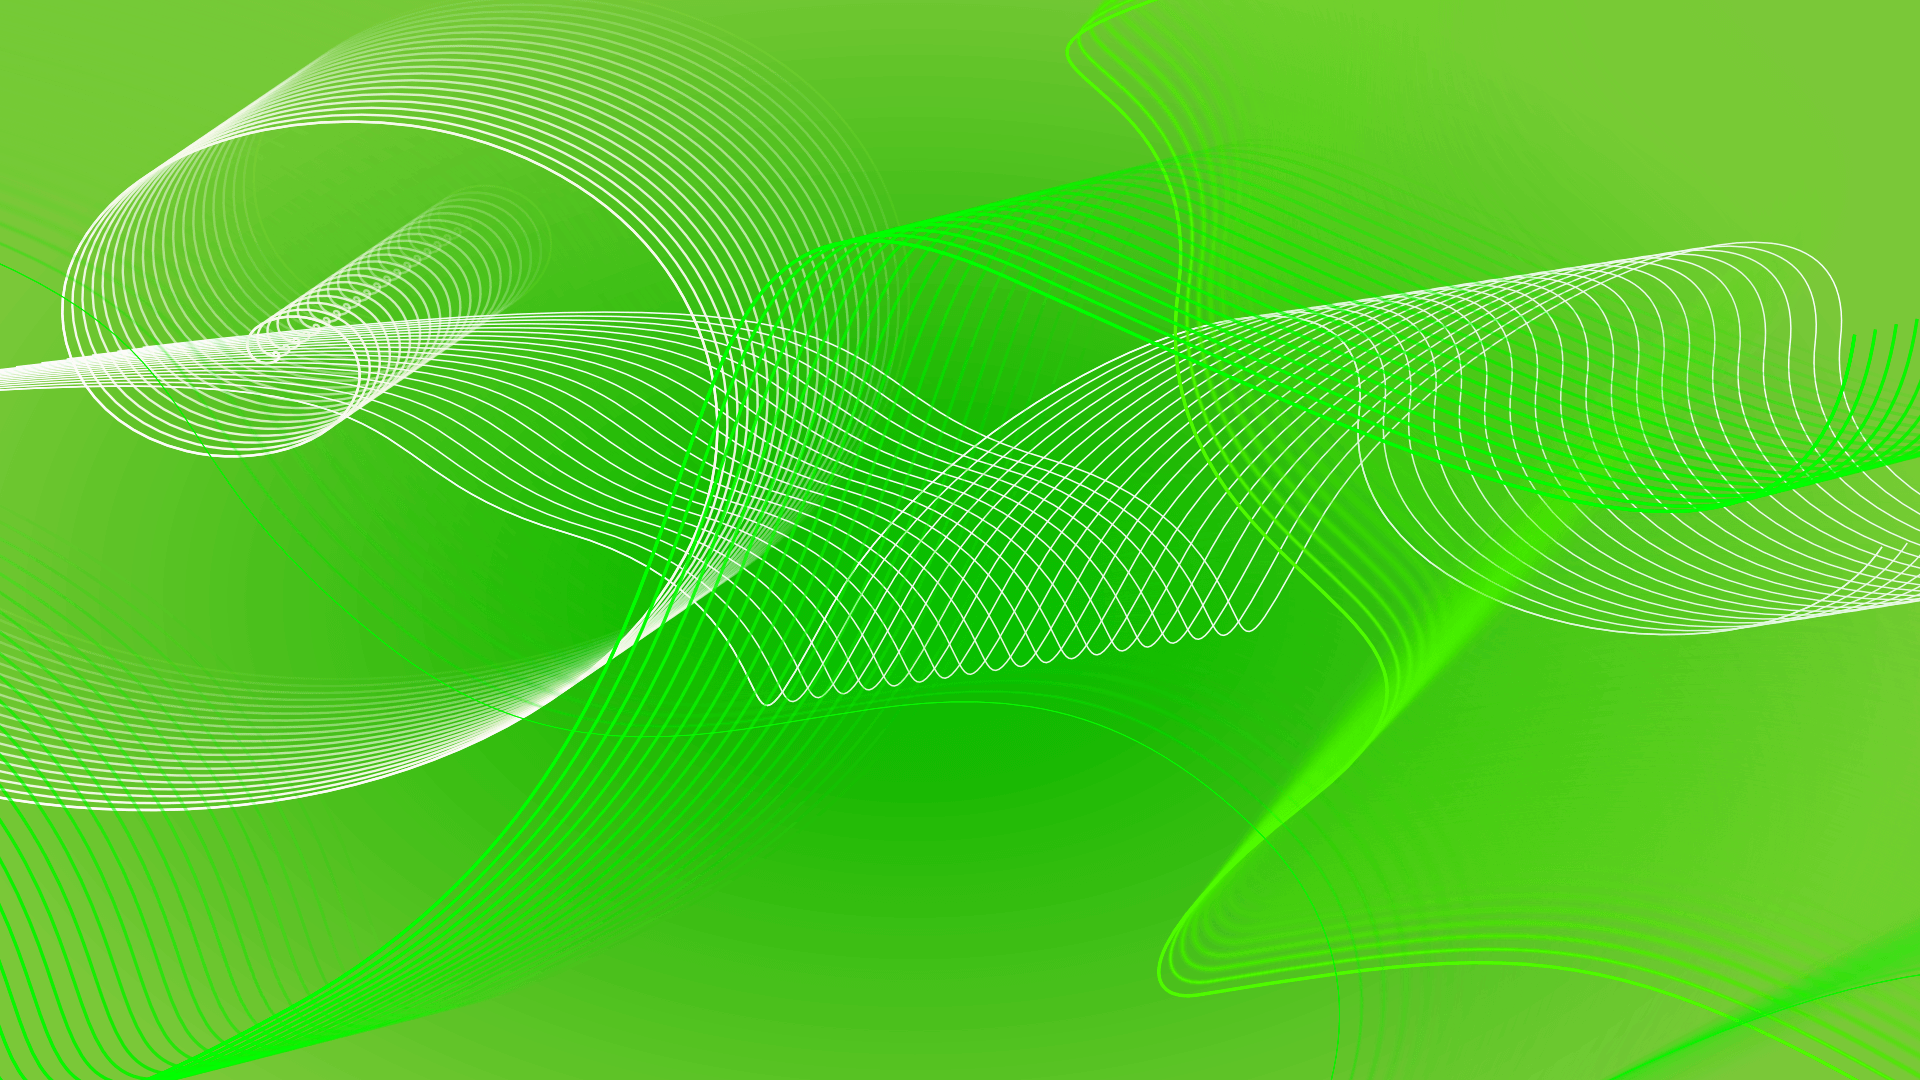 Set green spirals as background image